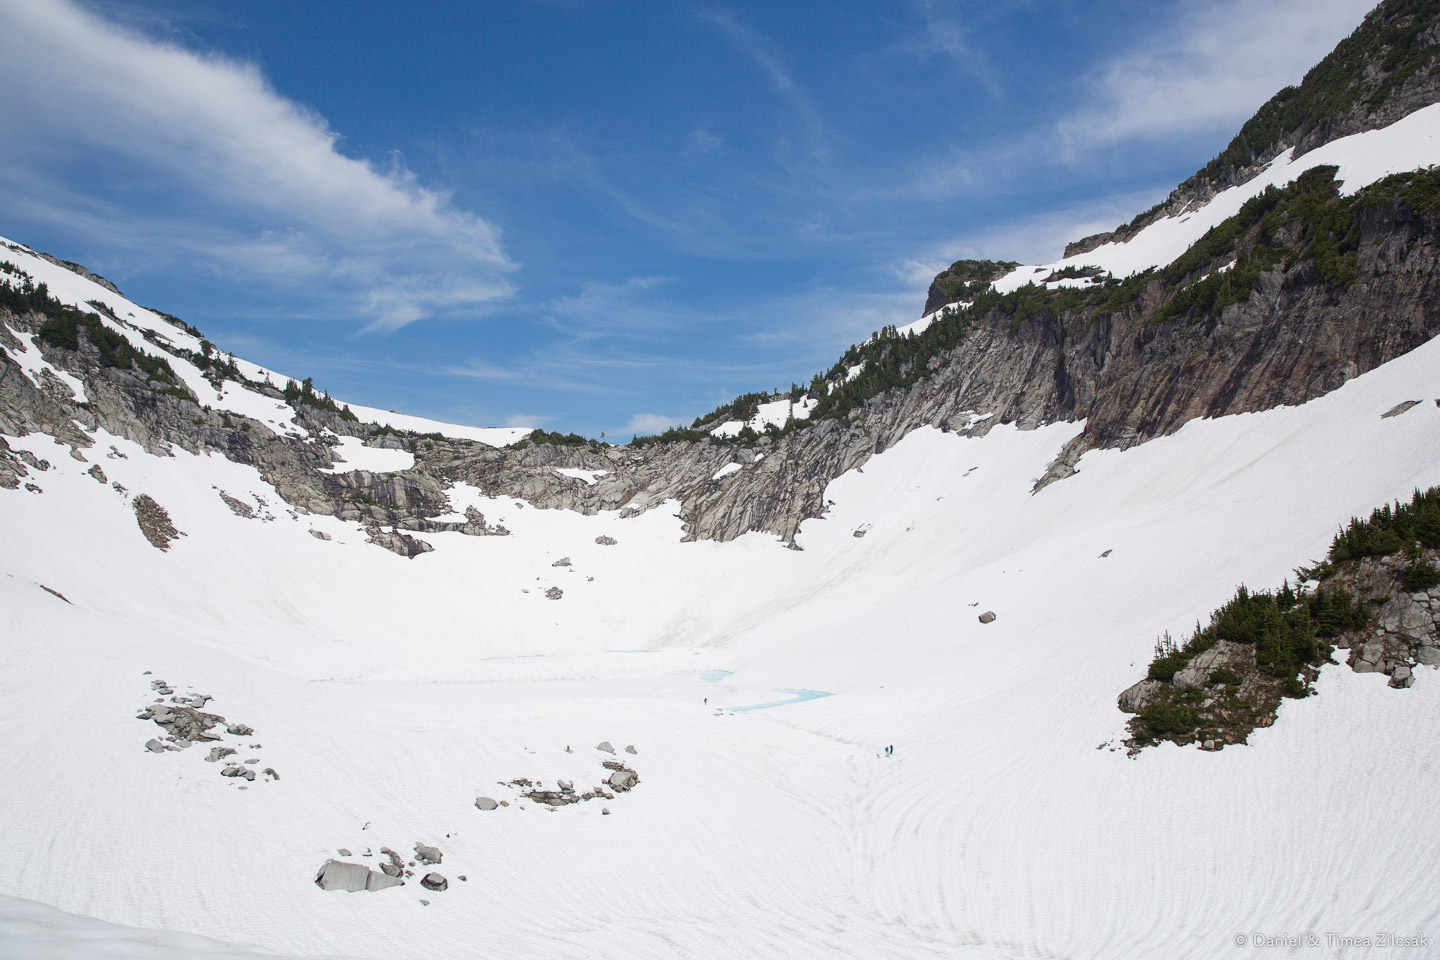 Below the snow there might or might not be Vesper Lake